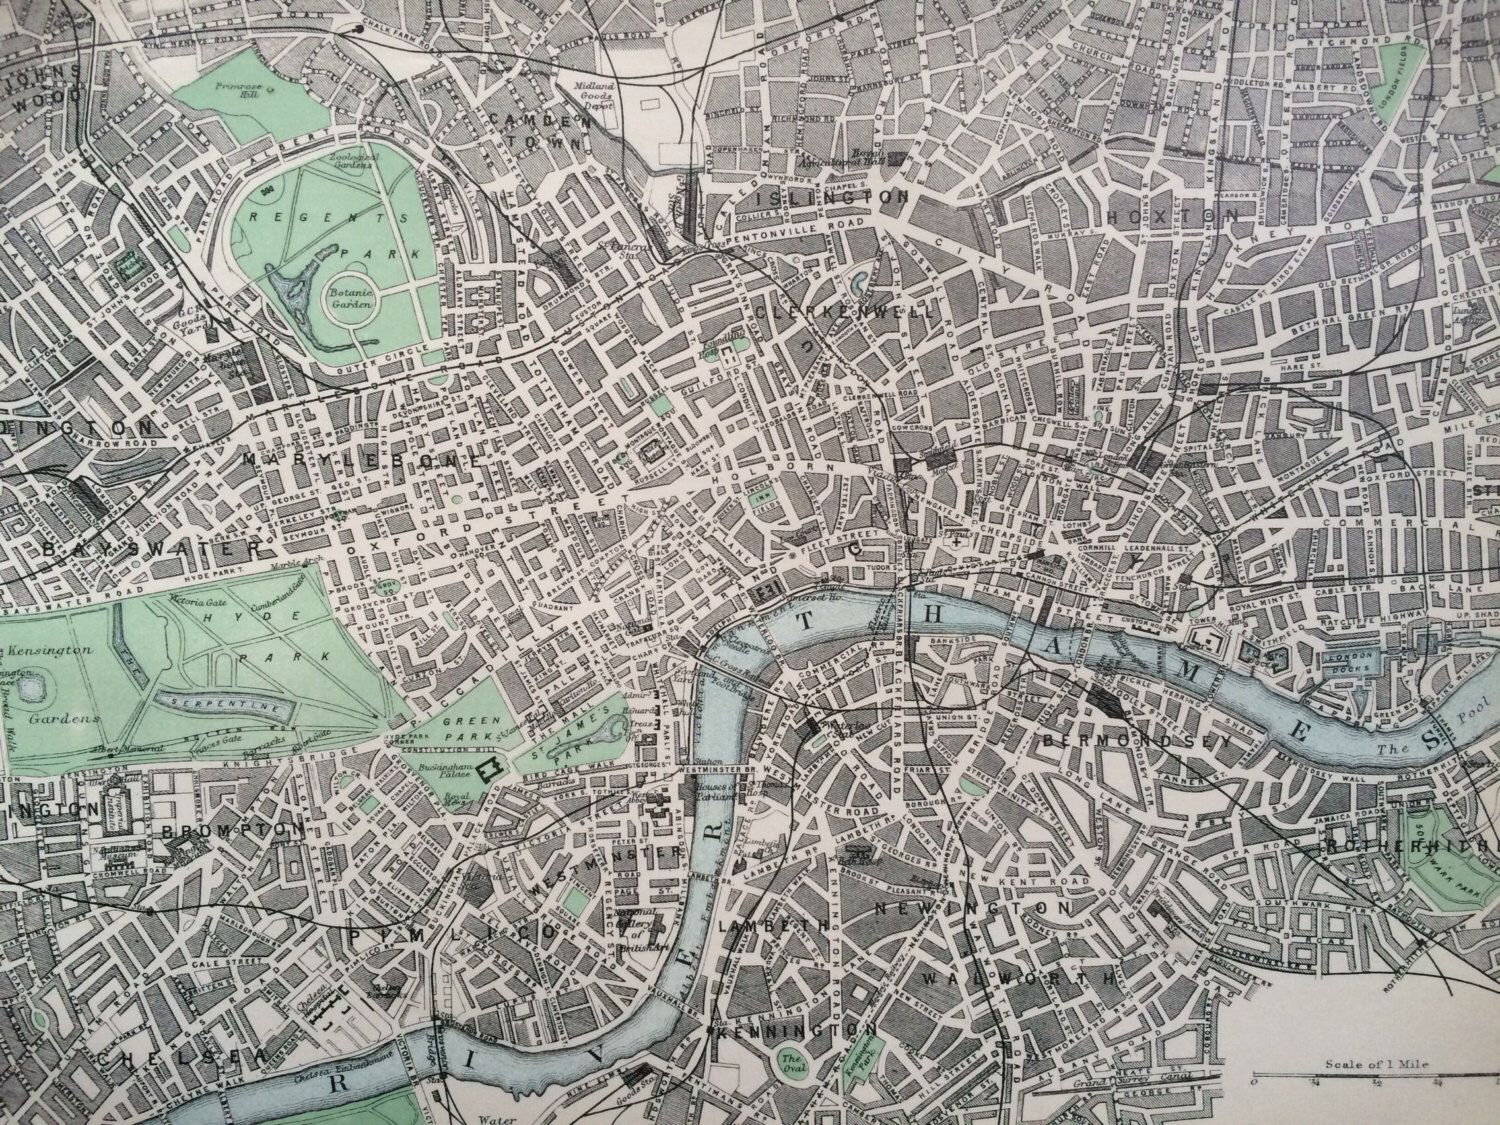 1875 CENTRAL LONDON original antique map cartography